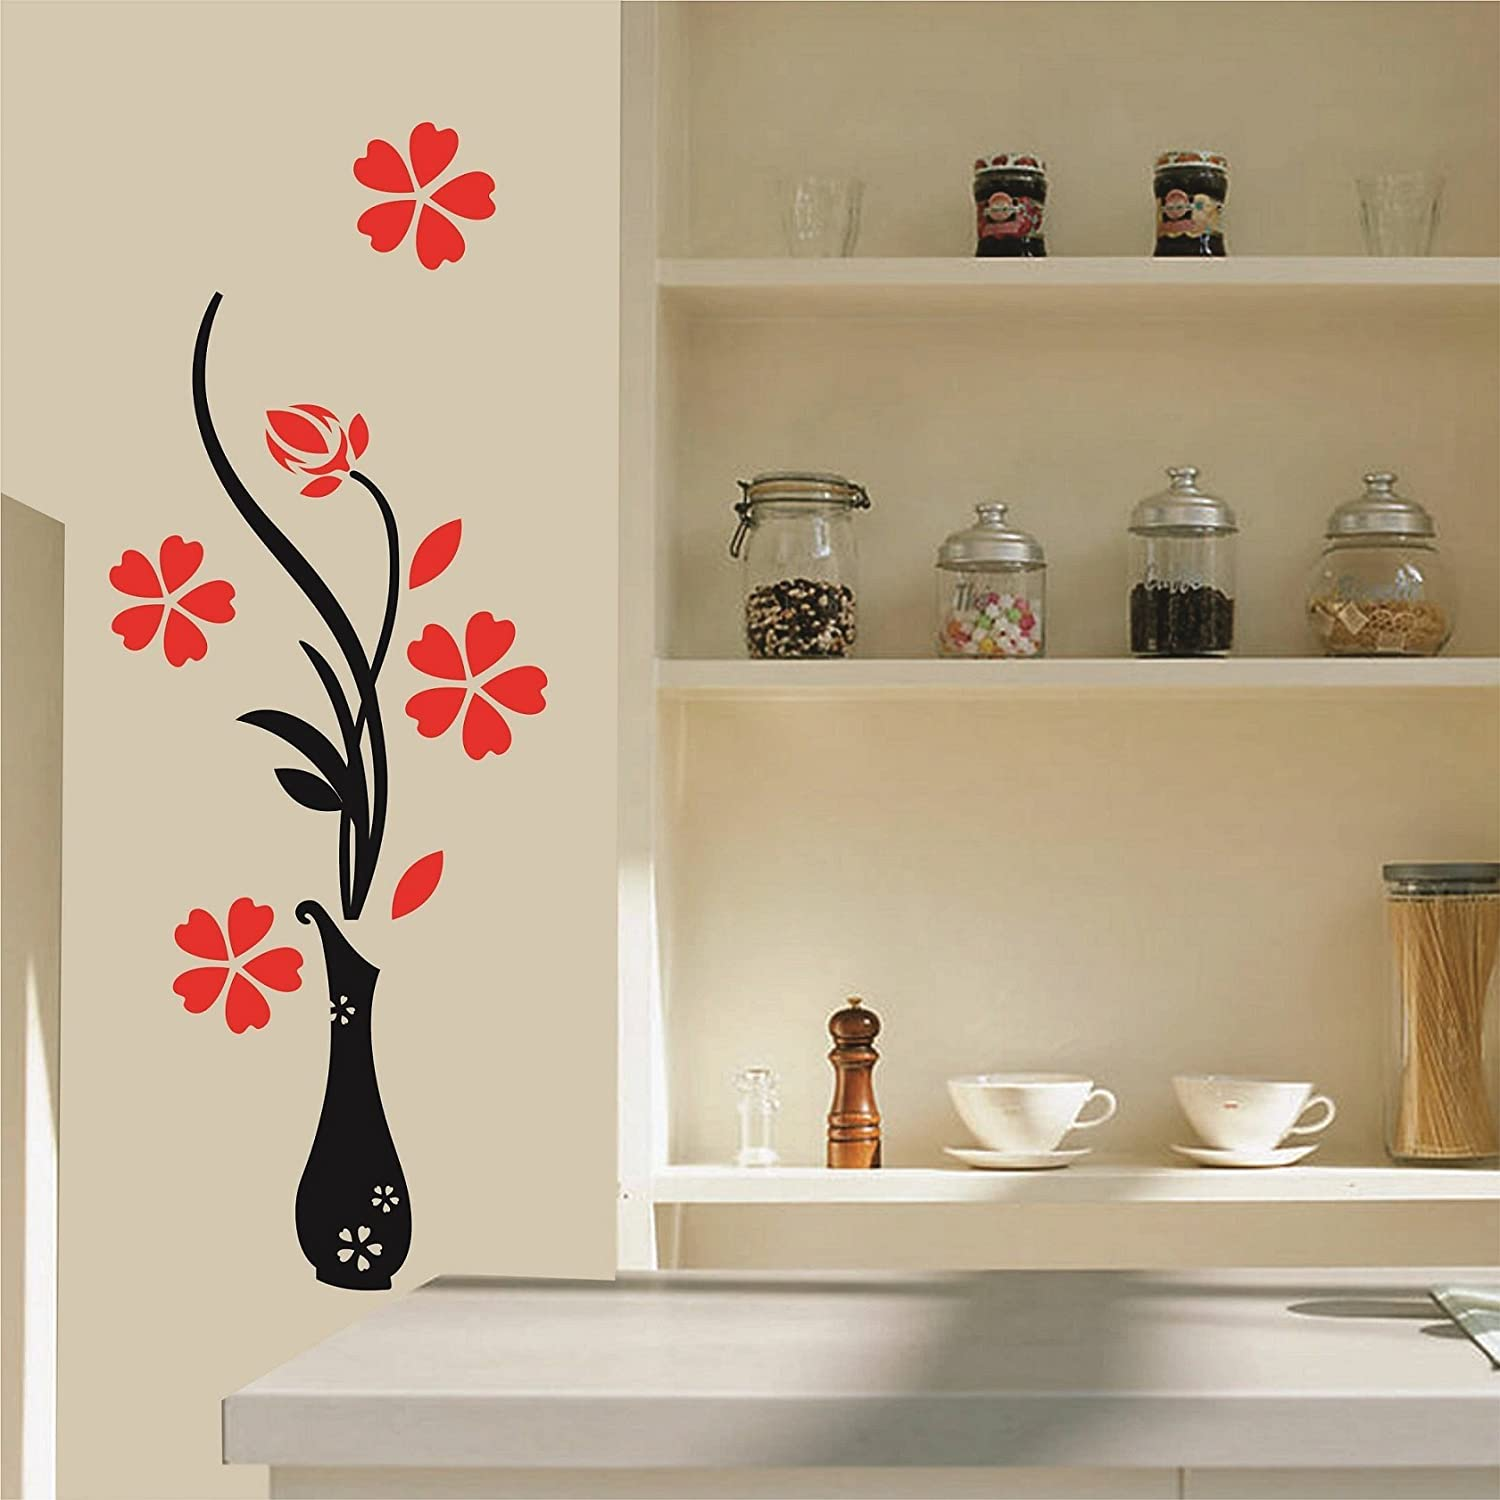 buy asmi collections pvc wall stickers beautiful peacock on asmi collections pvc wall stickers beautiful vase and flowers